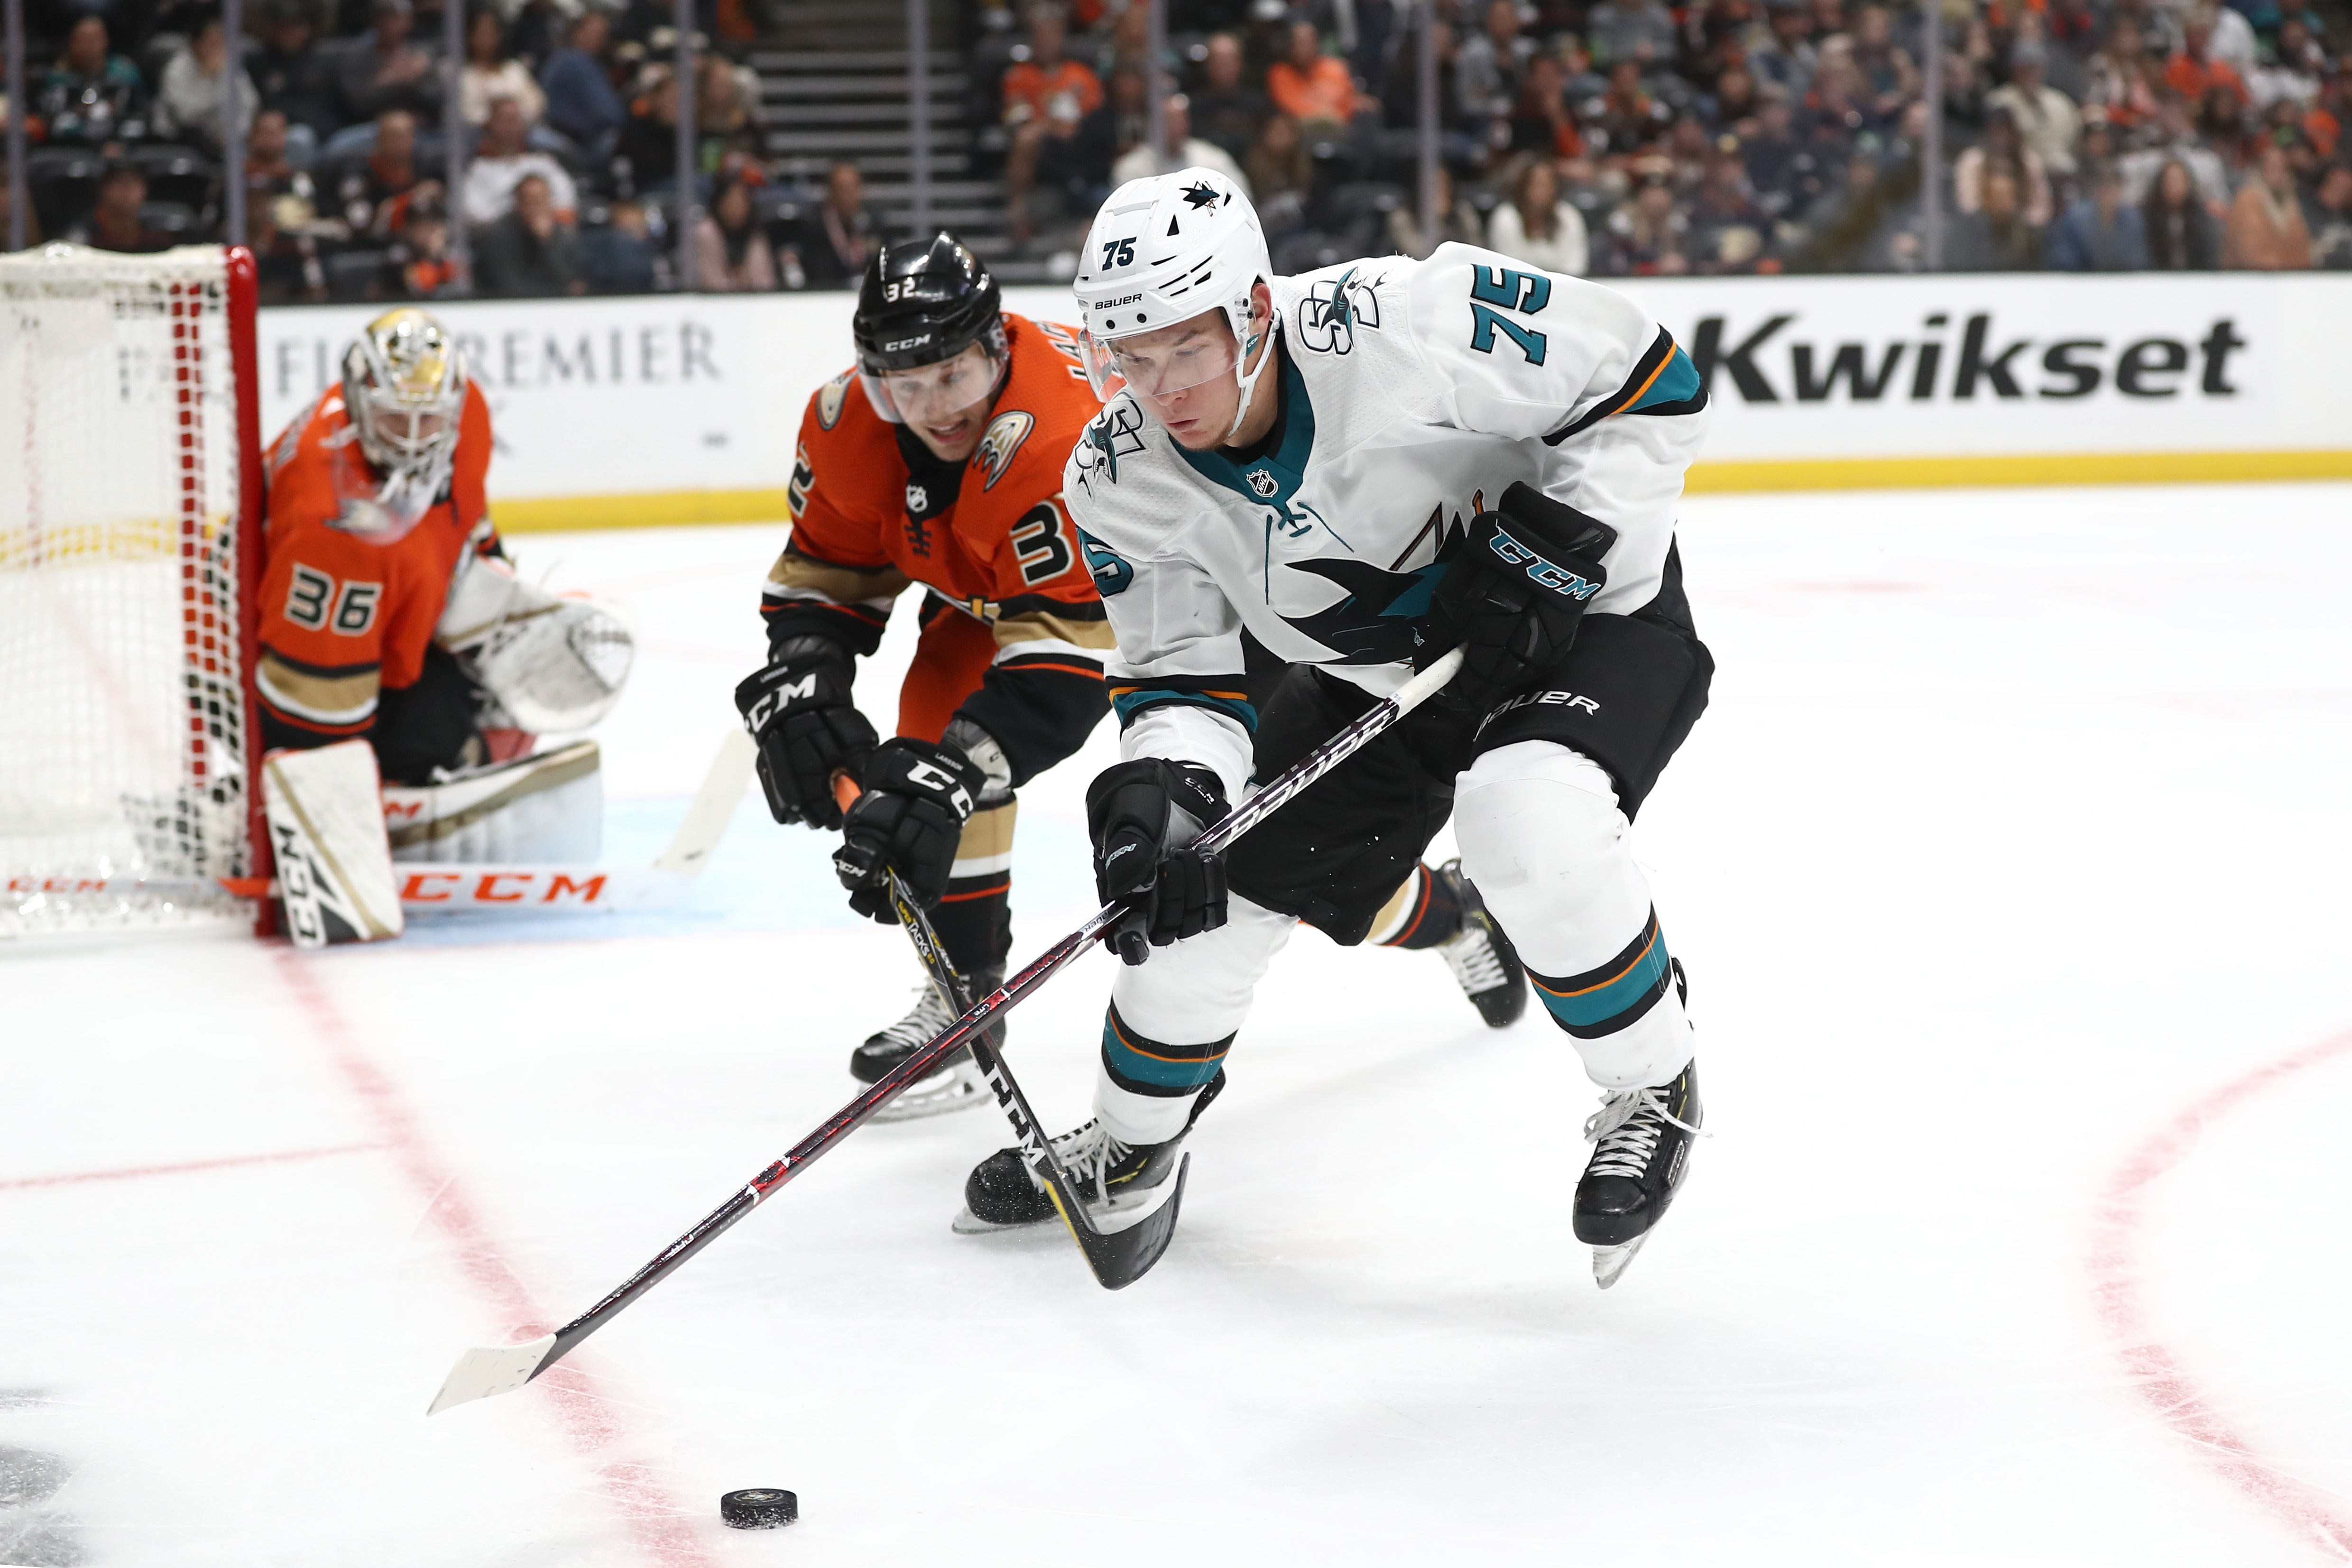 Jacob Larsson #32 of the Anaheim Ducks battles Danil Yurtaykin #75 of the San Jose Sharks for a loose puck during the second period of a game at Honda Center on October 05, 2019 in Anaheim, California.